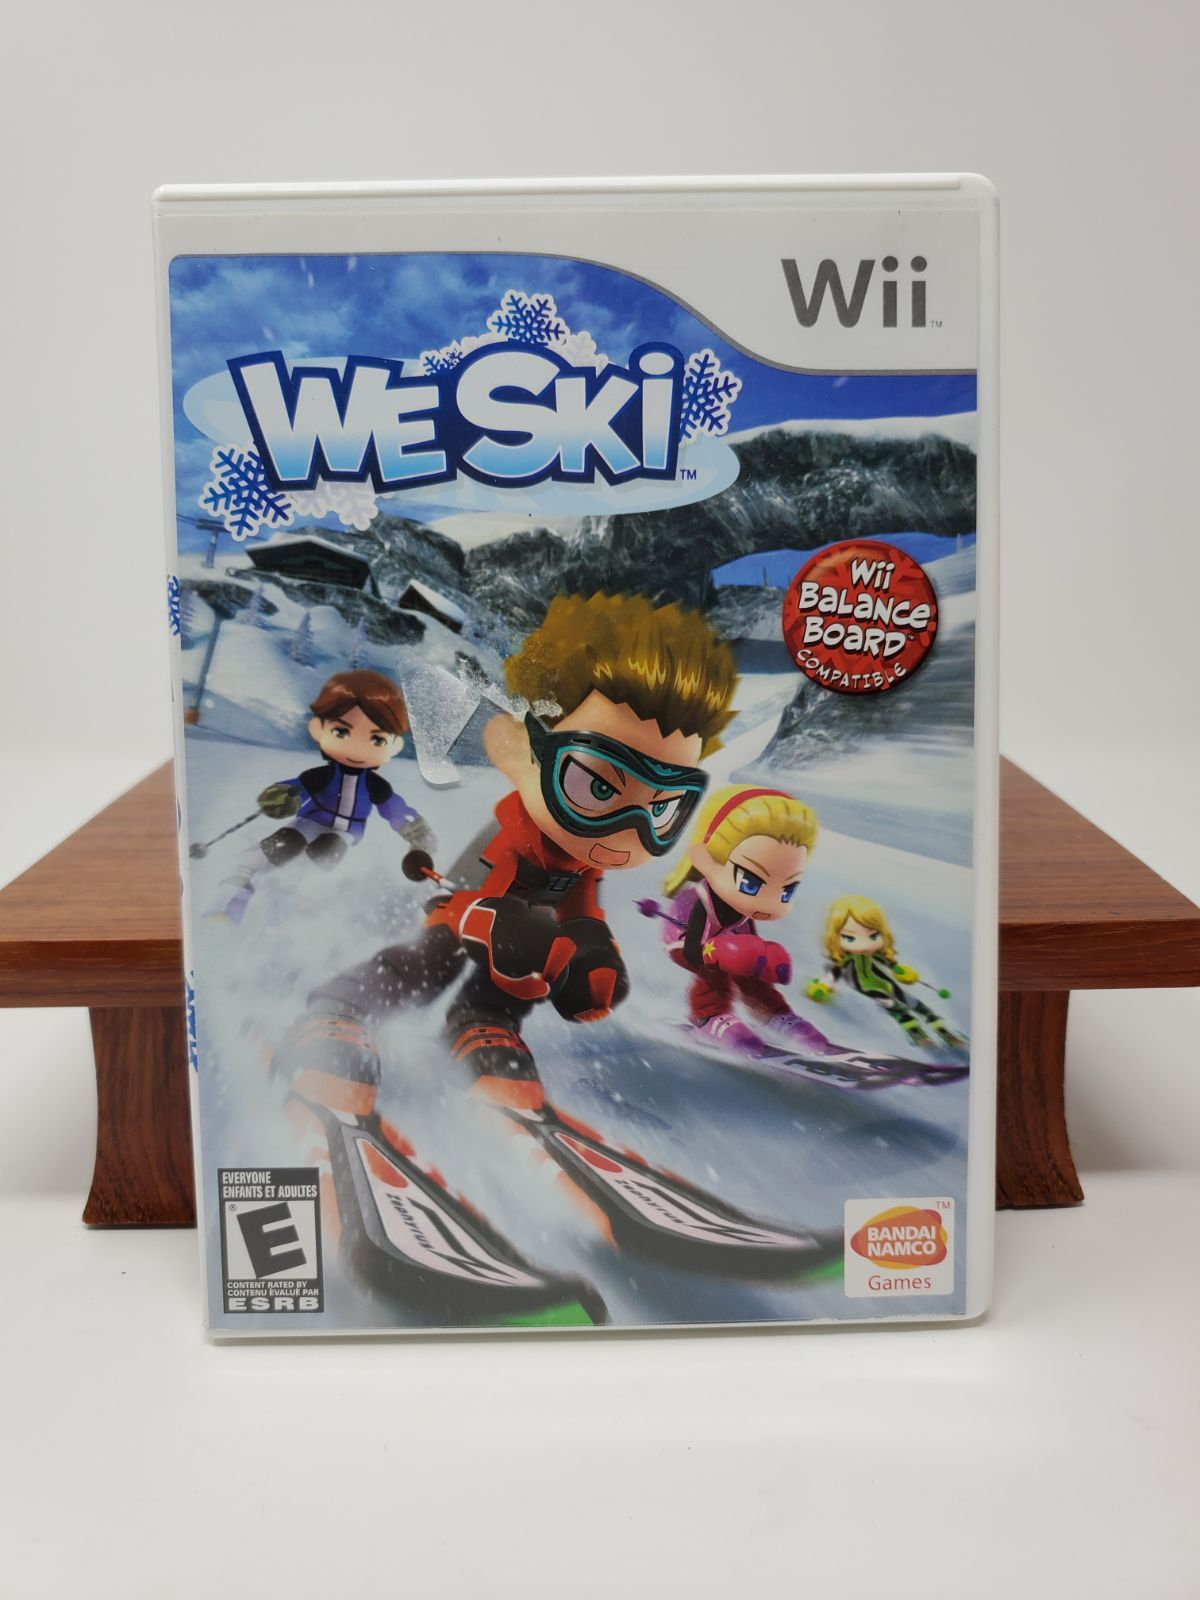 Balance board compatible wii we ski gamethats right